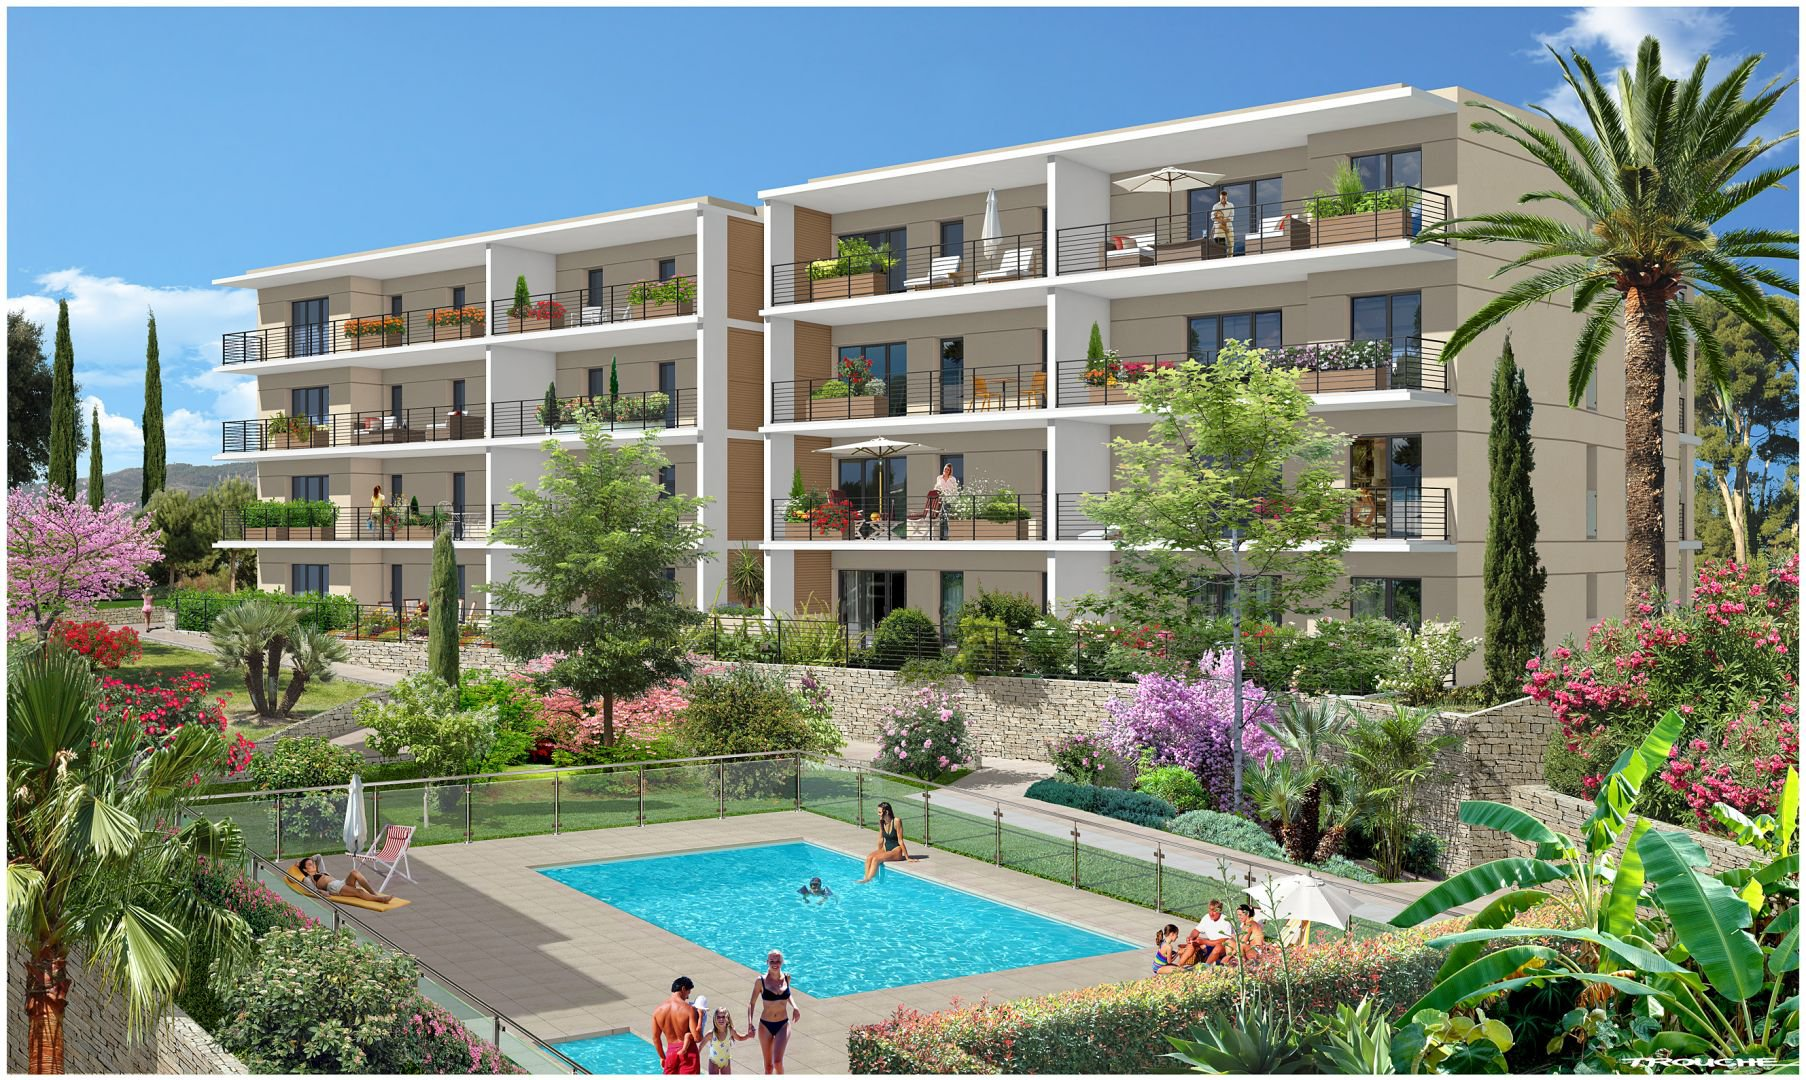 New development in Vallauris